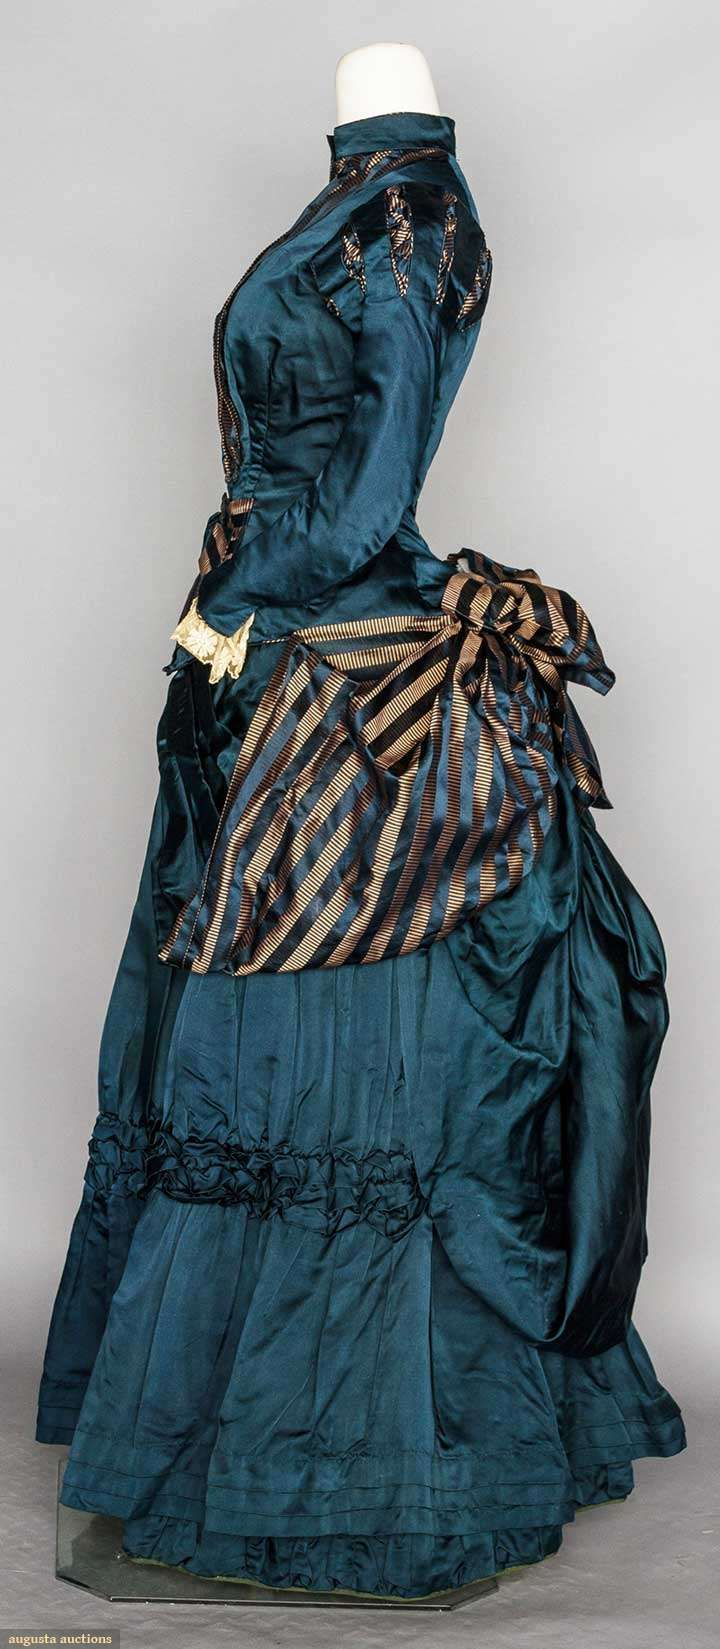 LADIES' BUSTLE DRESSES, 1880, Augusta Auctions                              …